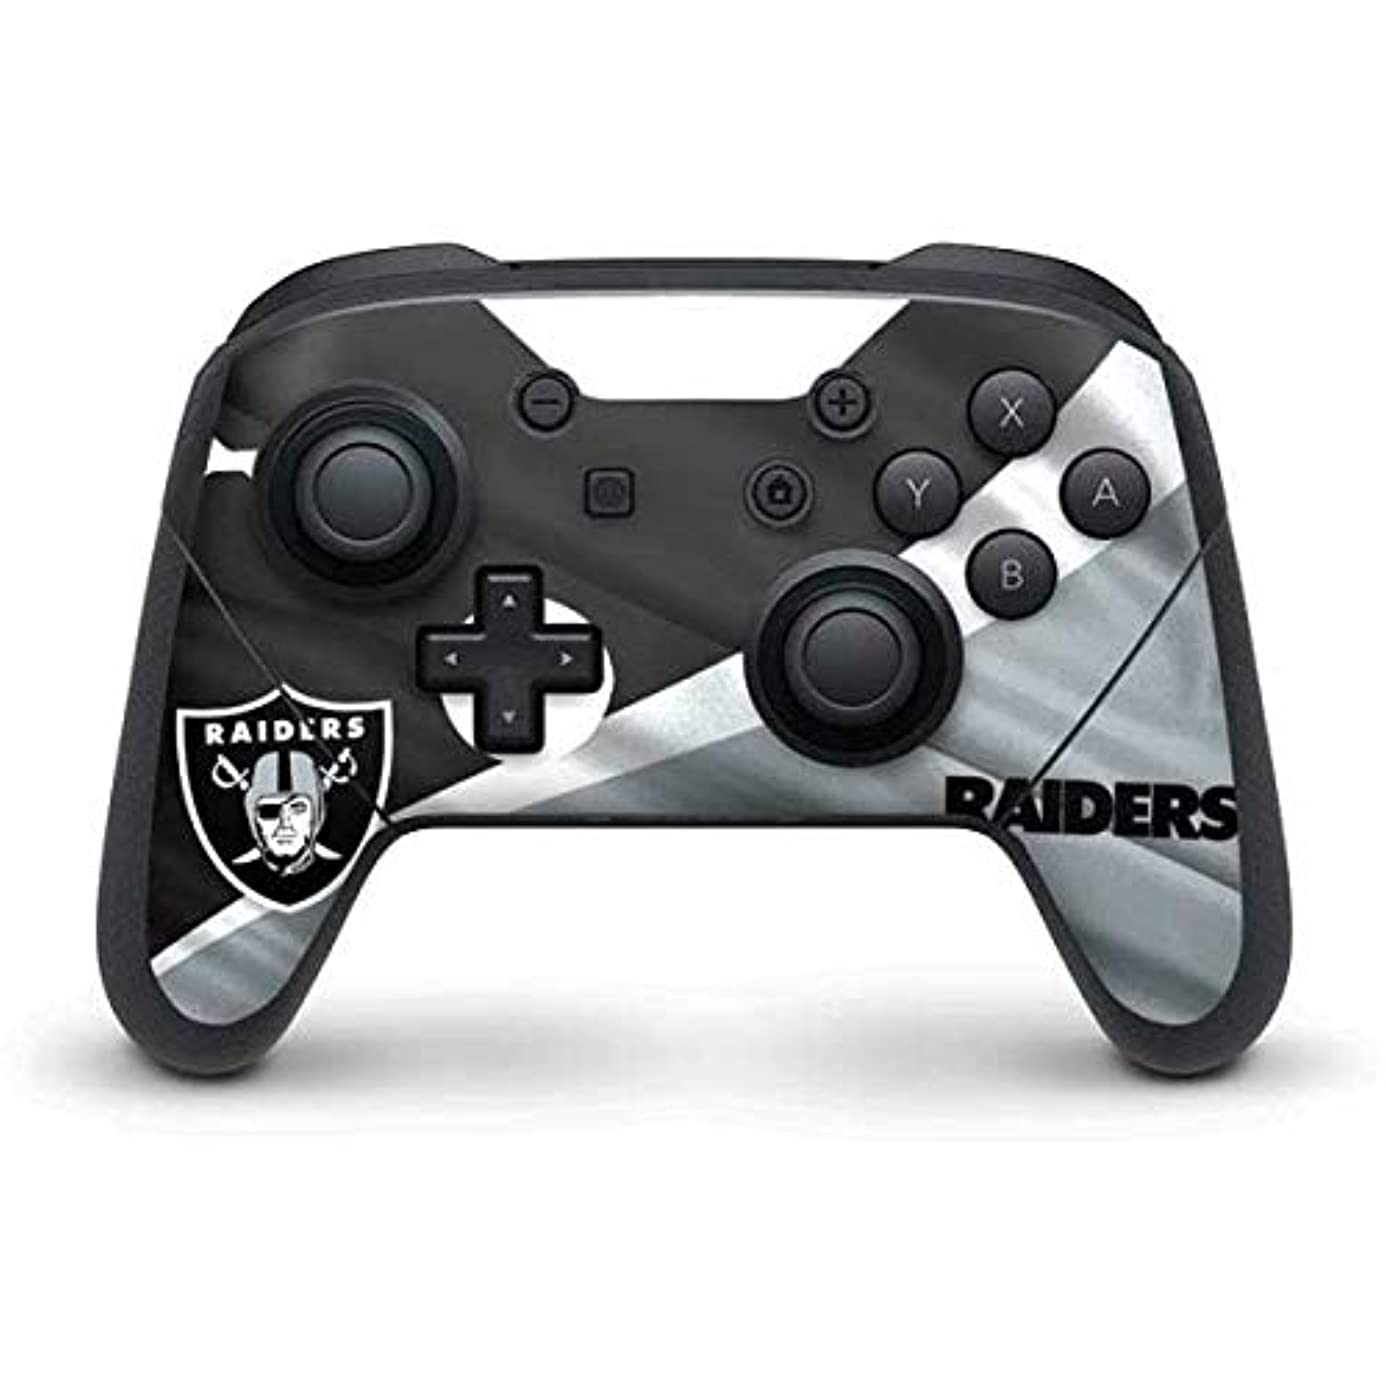 Skinit Oakland Raiders Nintendo Switch Pro Controller Skin - Officially Licensed NFL Gaming Decal - Ultra Thin, Lightweight Vinyl Decal Protection